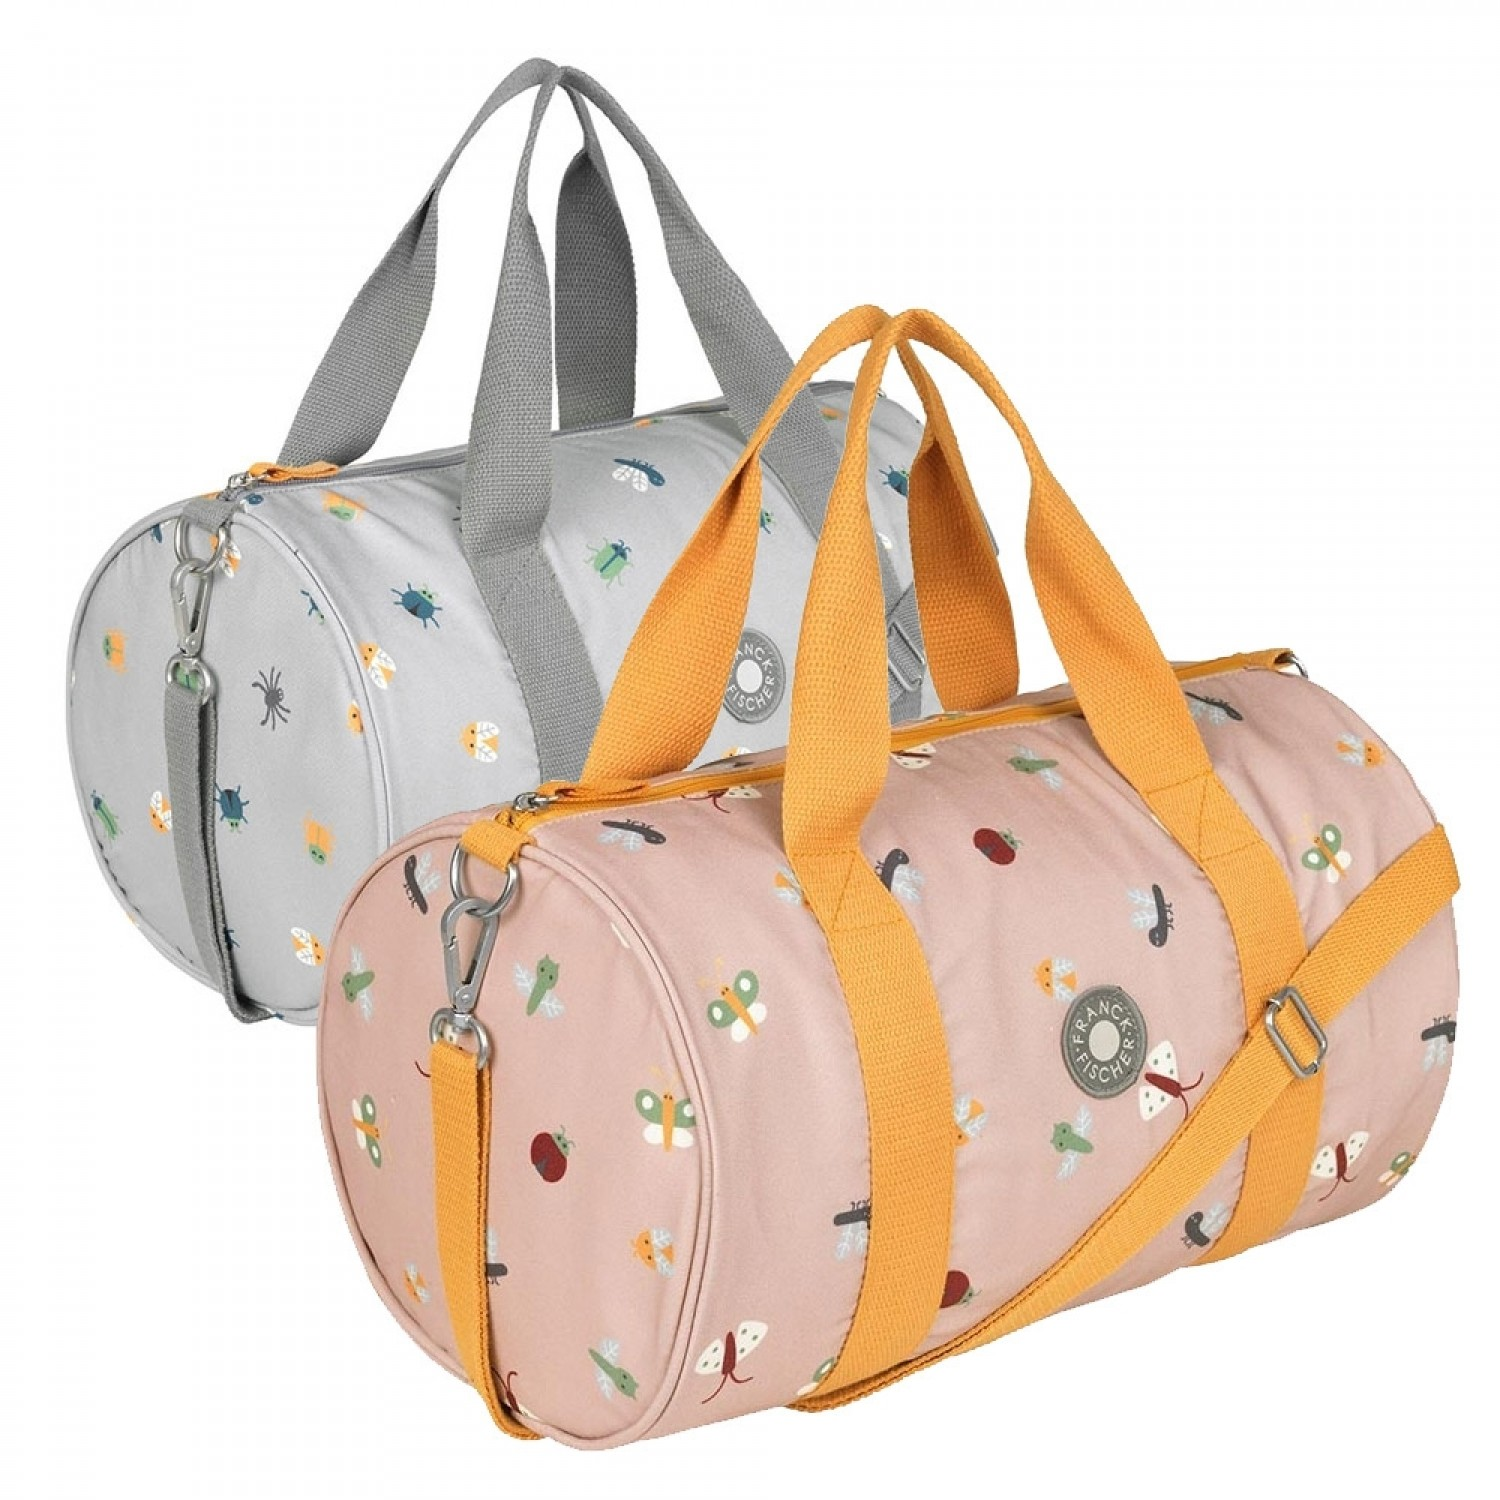 Eco Storm Duffle Bag & Sports Bag for Kids | Franck & Fischer